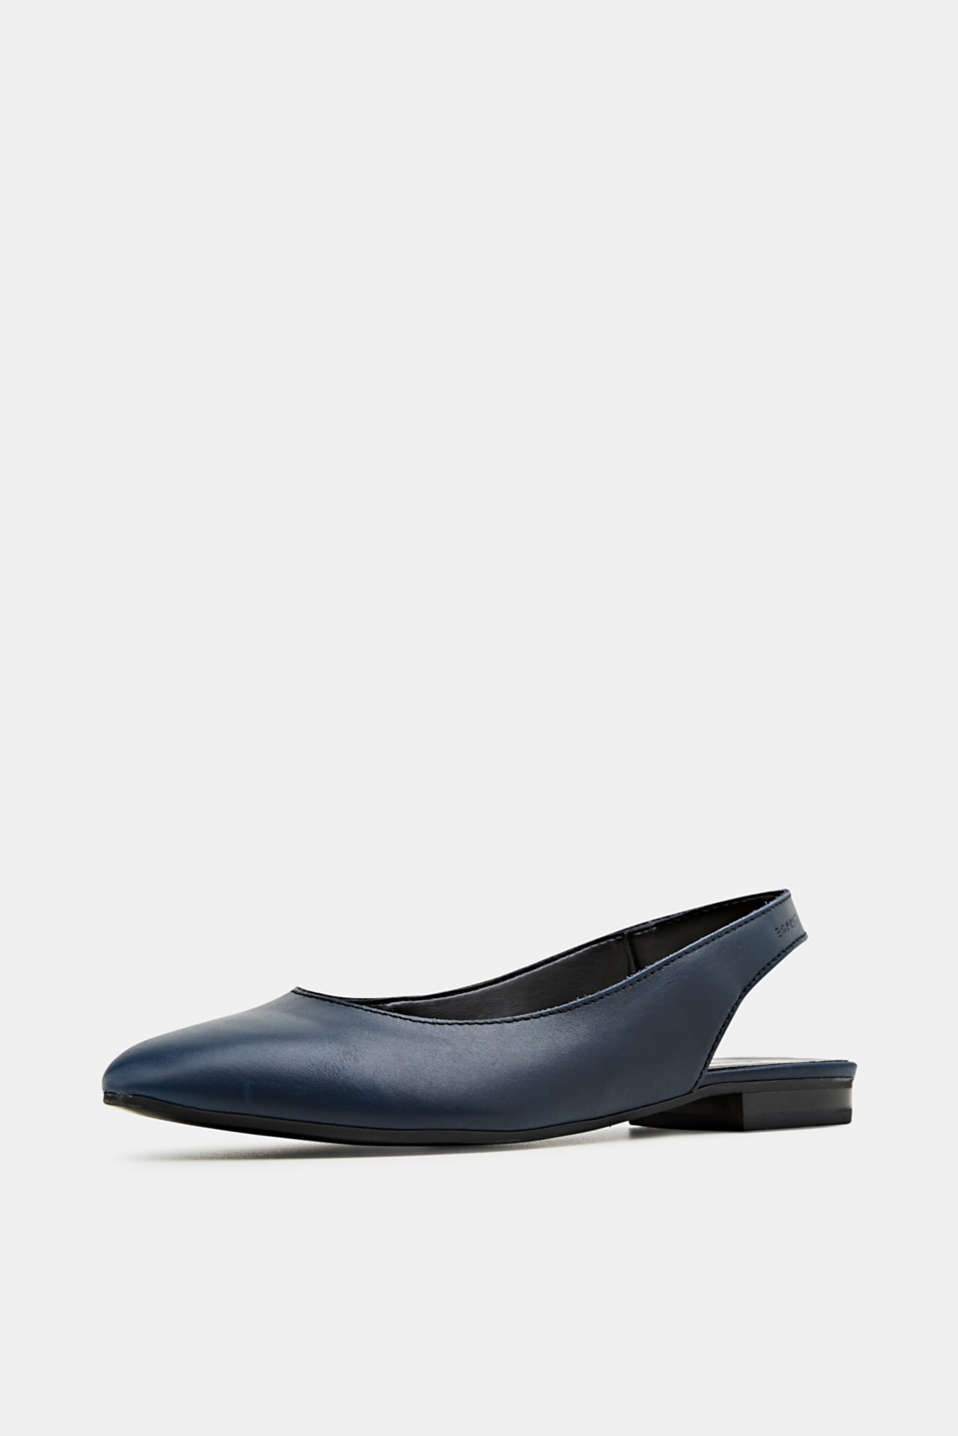 Leather sling back ballerinas, NAVY, detail image number 2